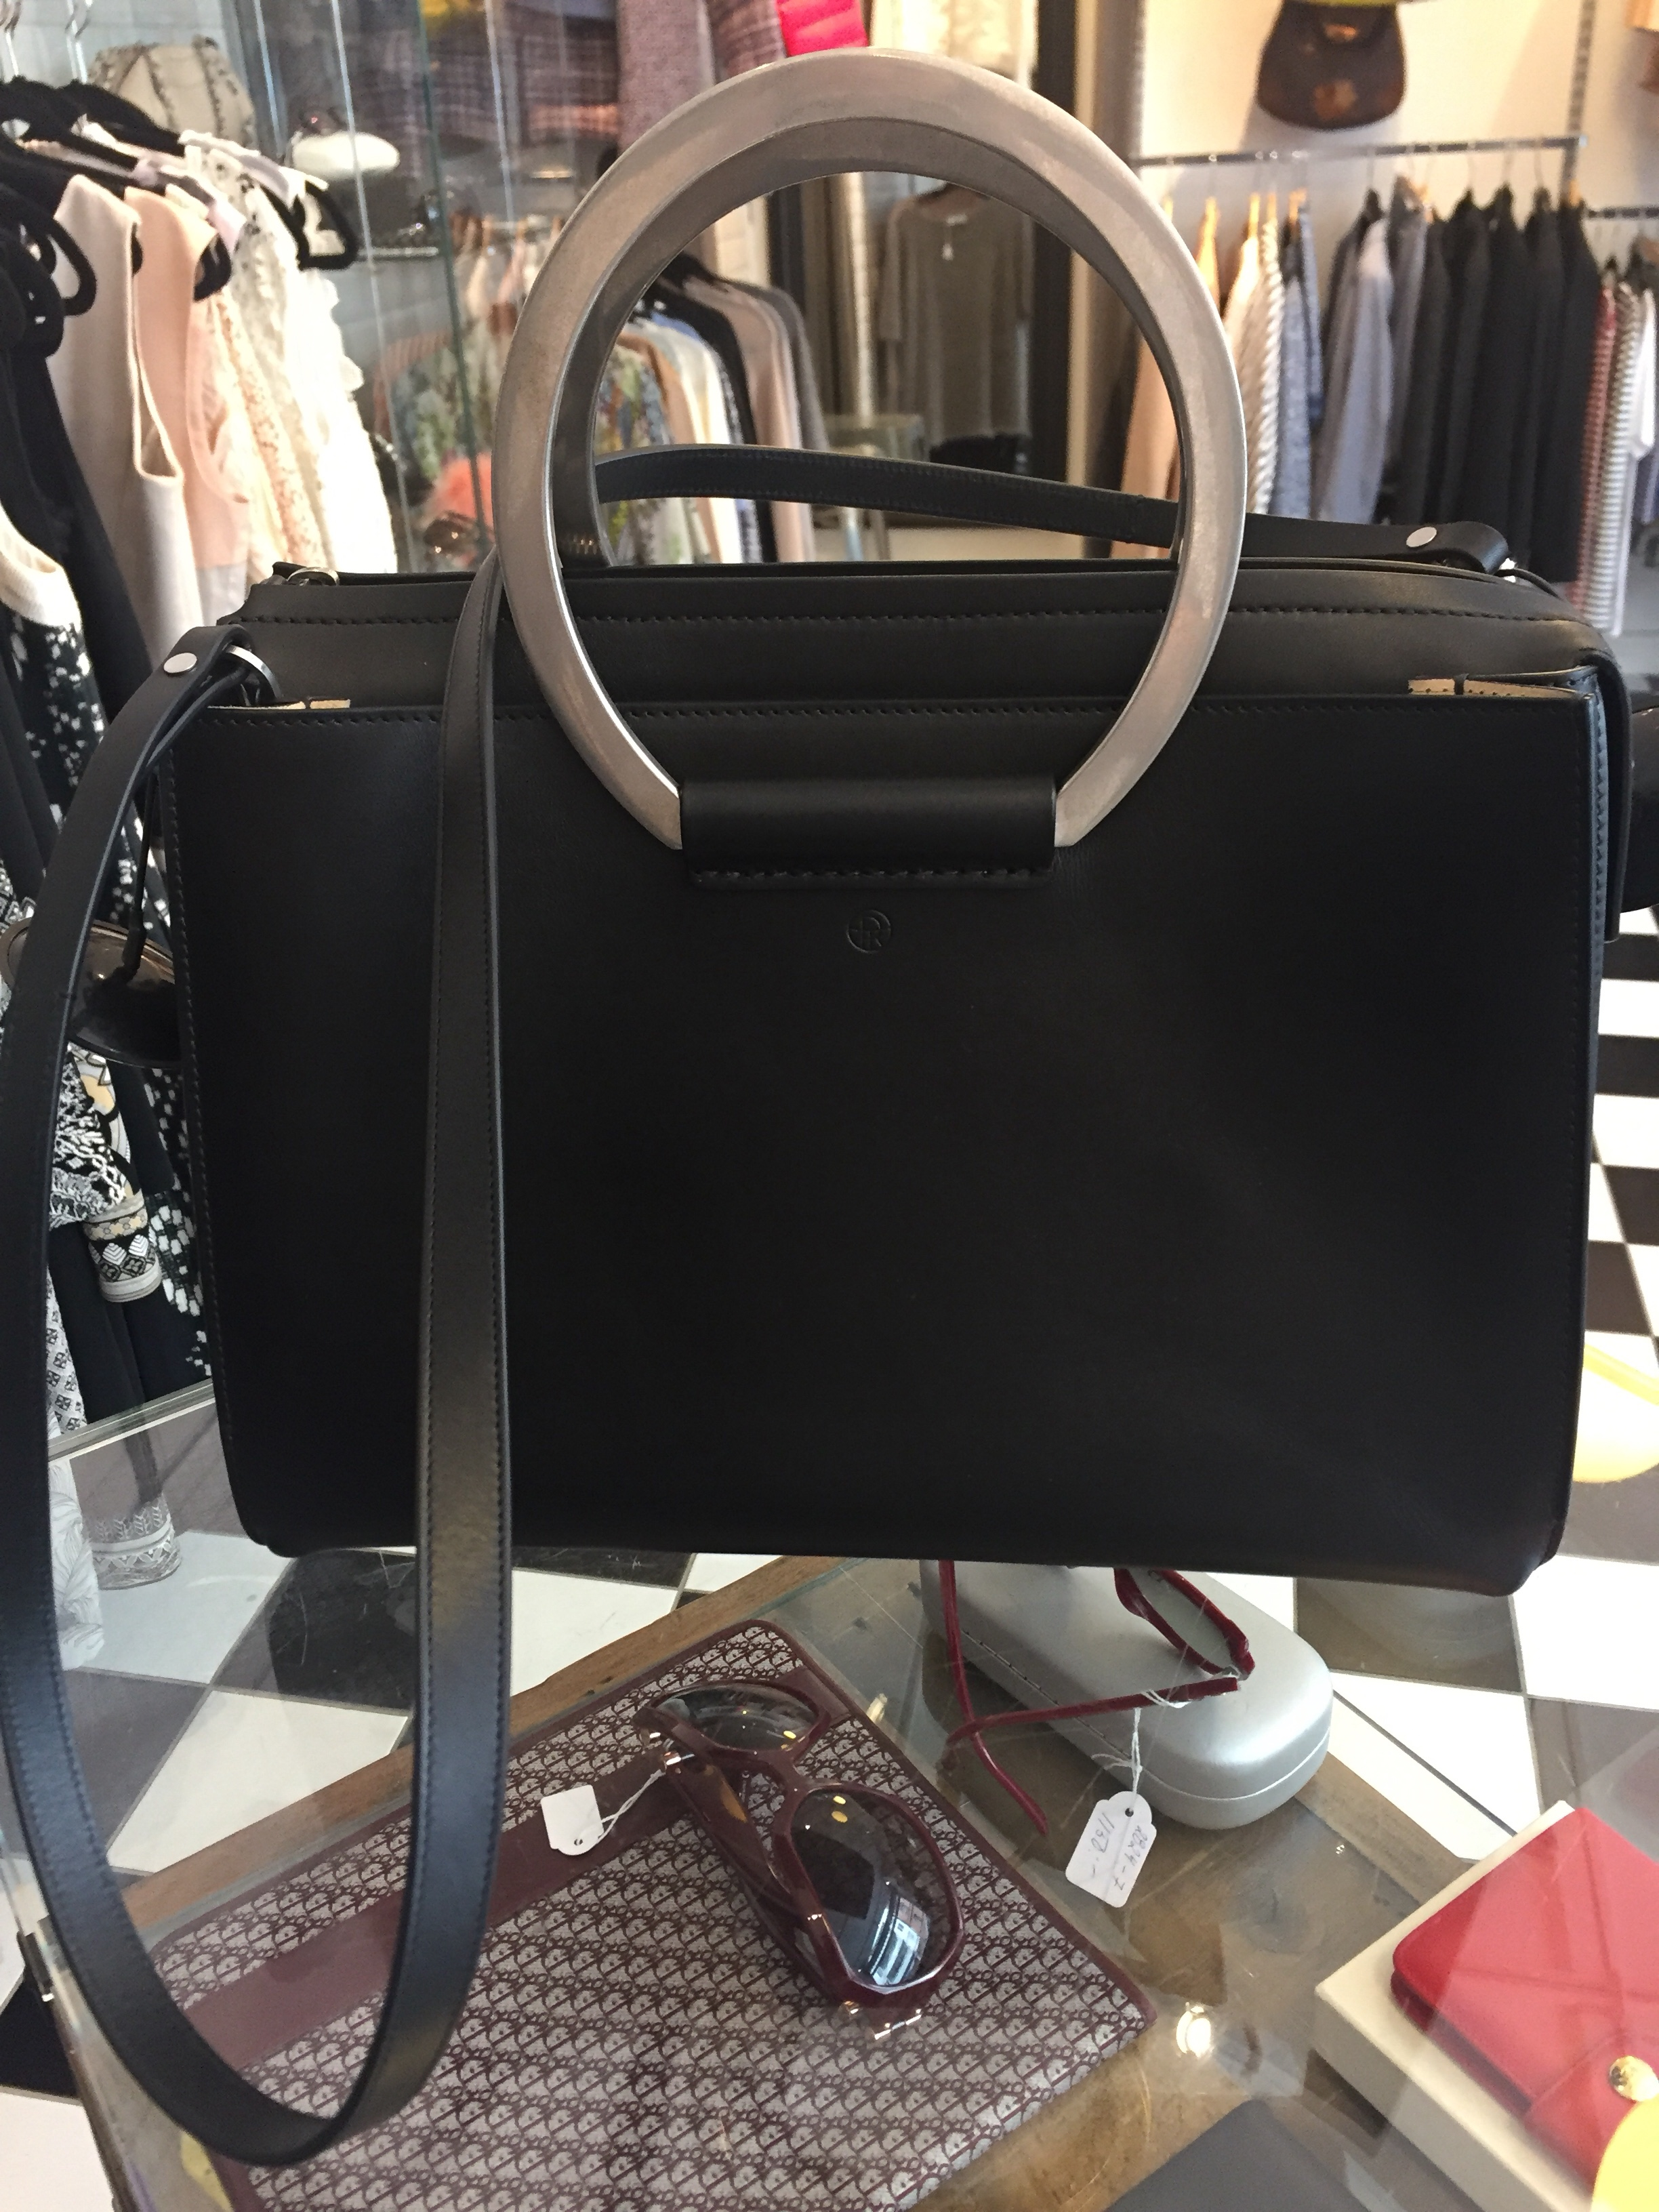 The Row Classic 5 Tote